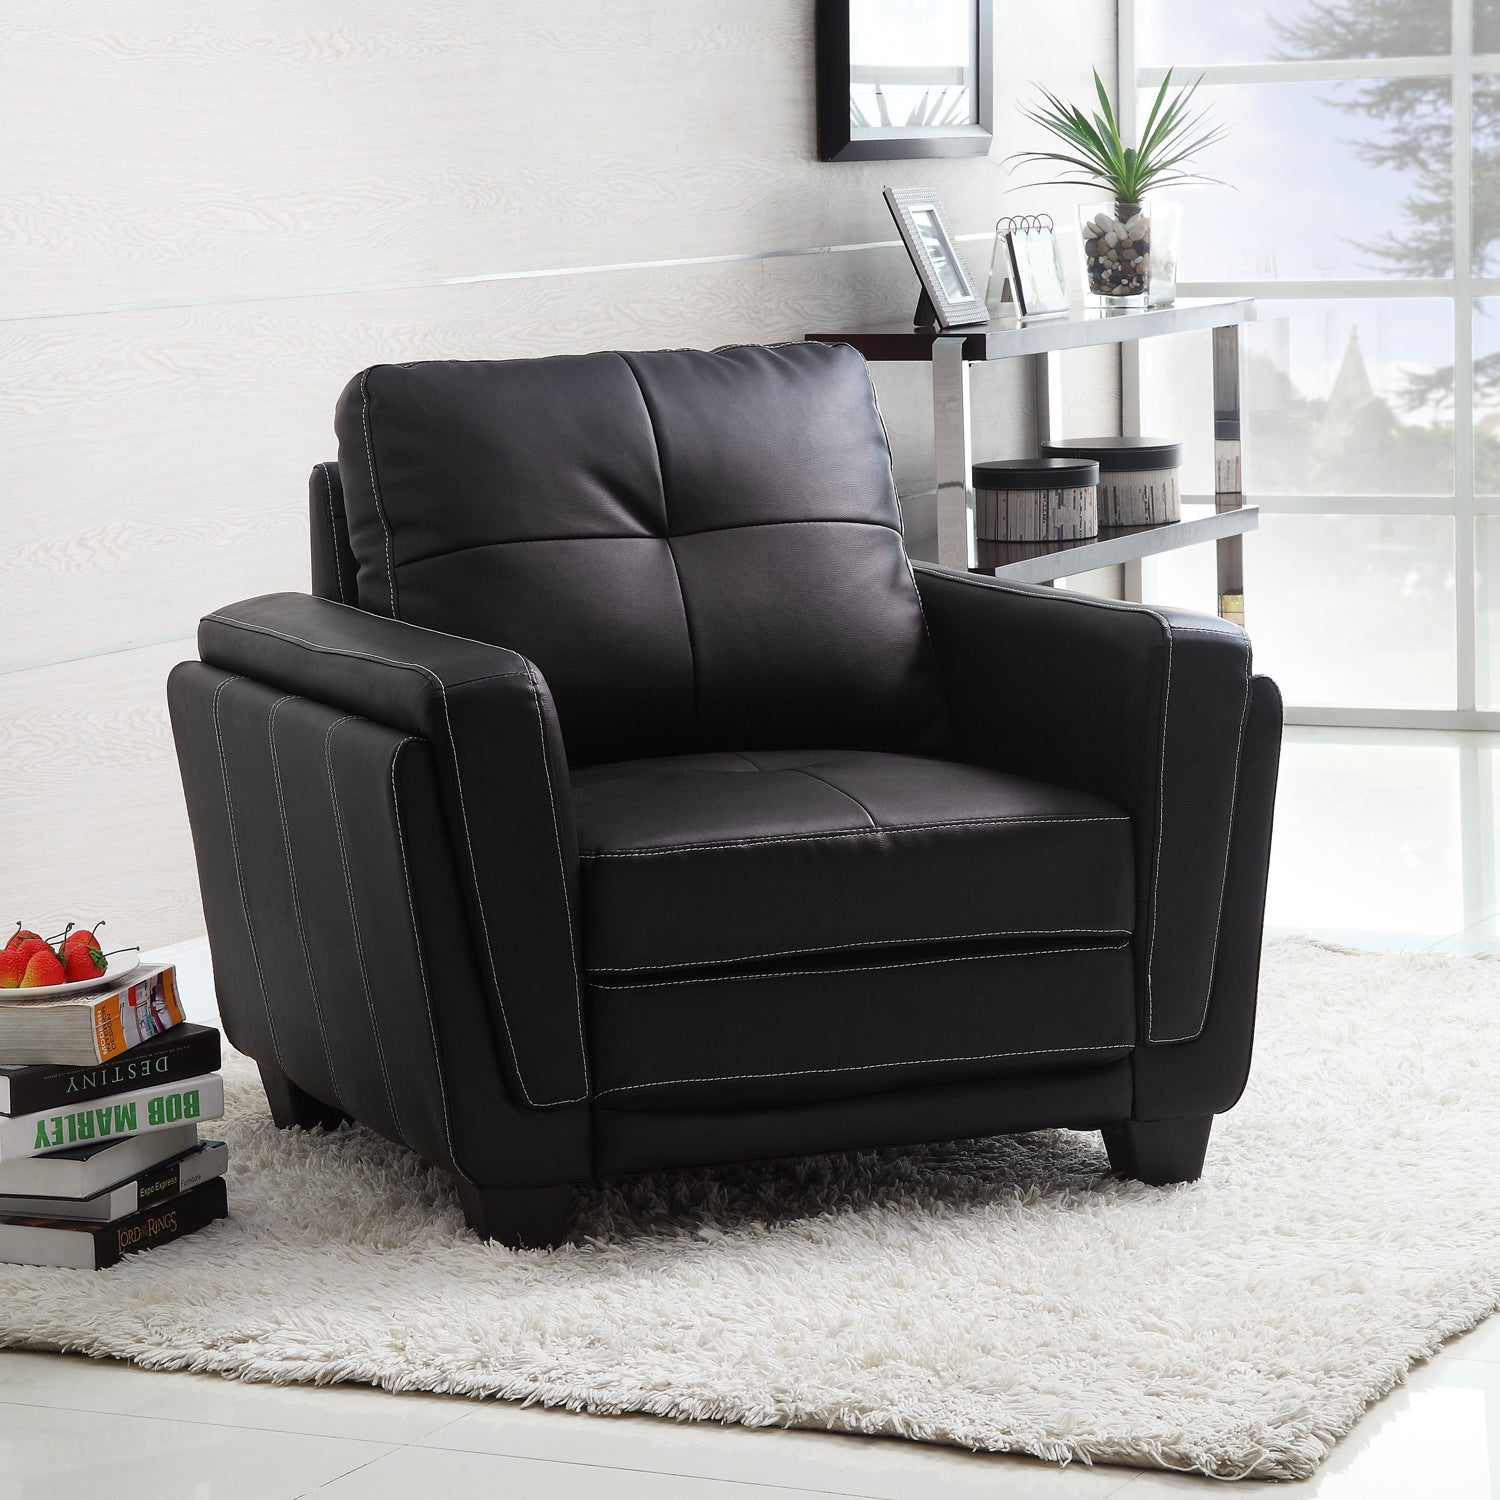 Shop Leah Black Faux Leather Low Profile Chair Free